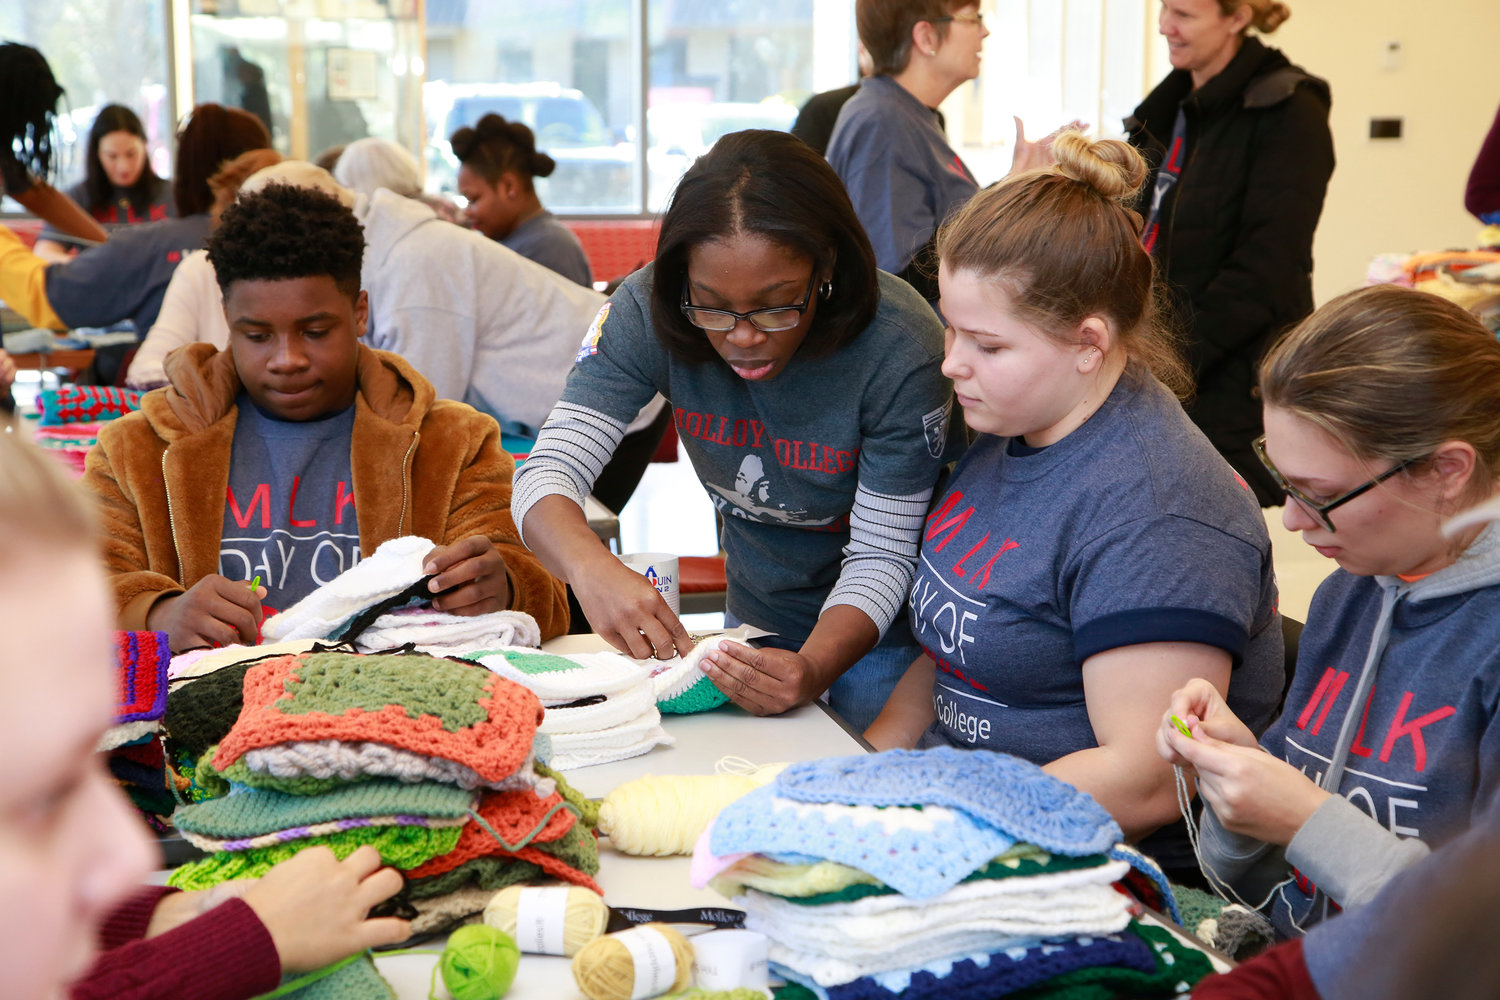 Molloy staffer Donna Headley showed Molloy student Courtney Copf how to stitch crocheted squares together to make blankets.